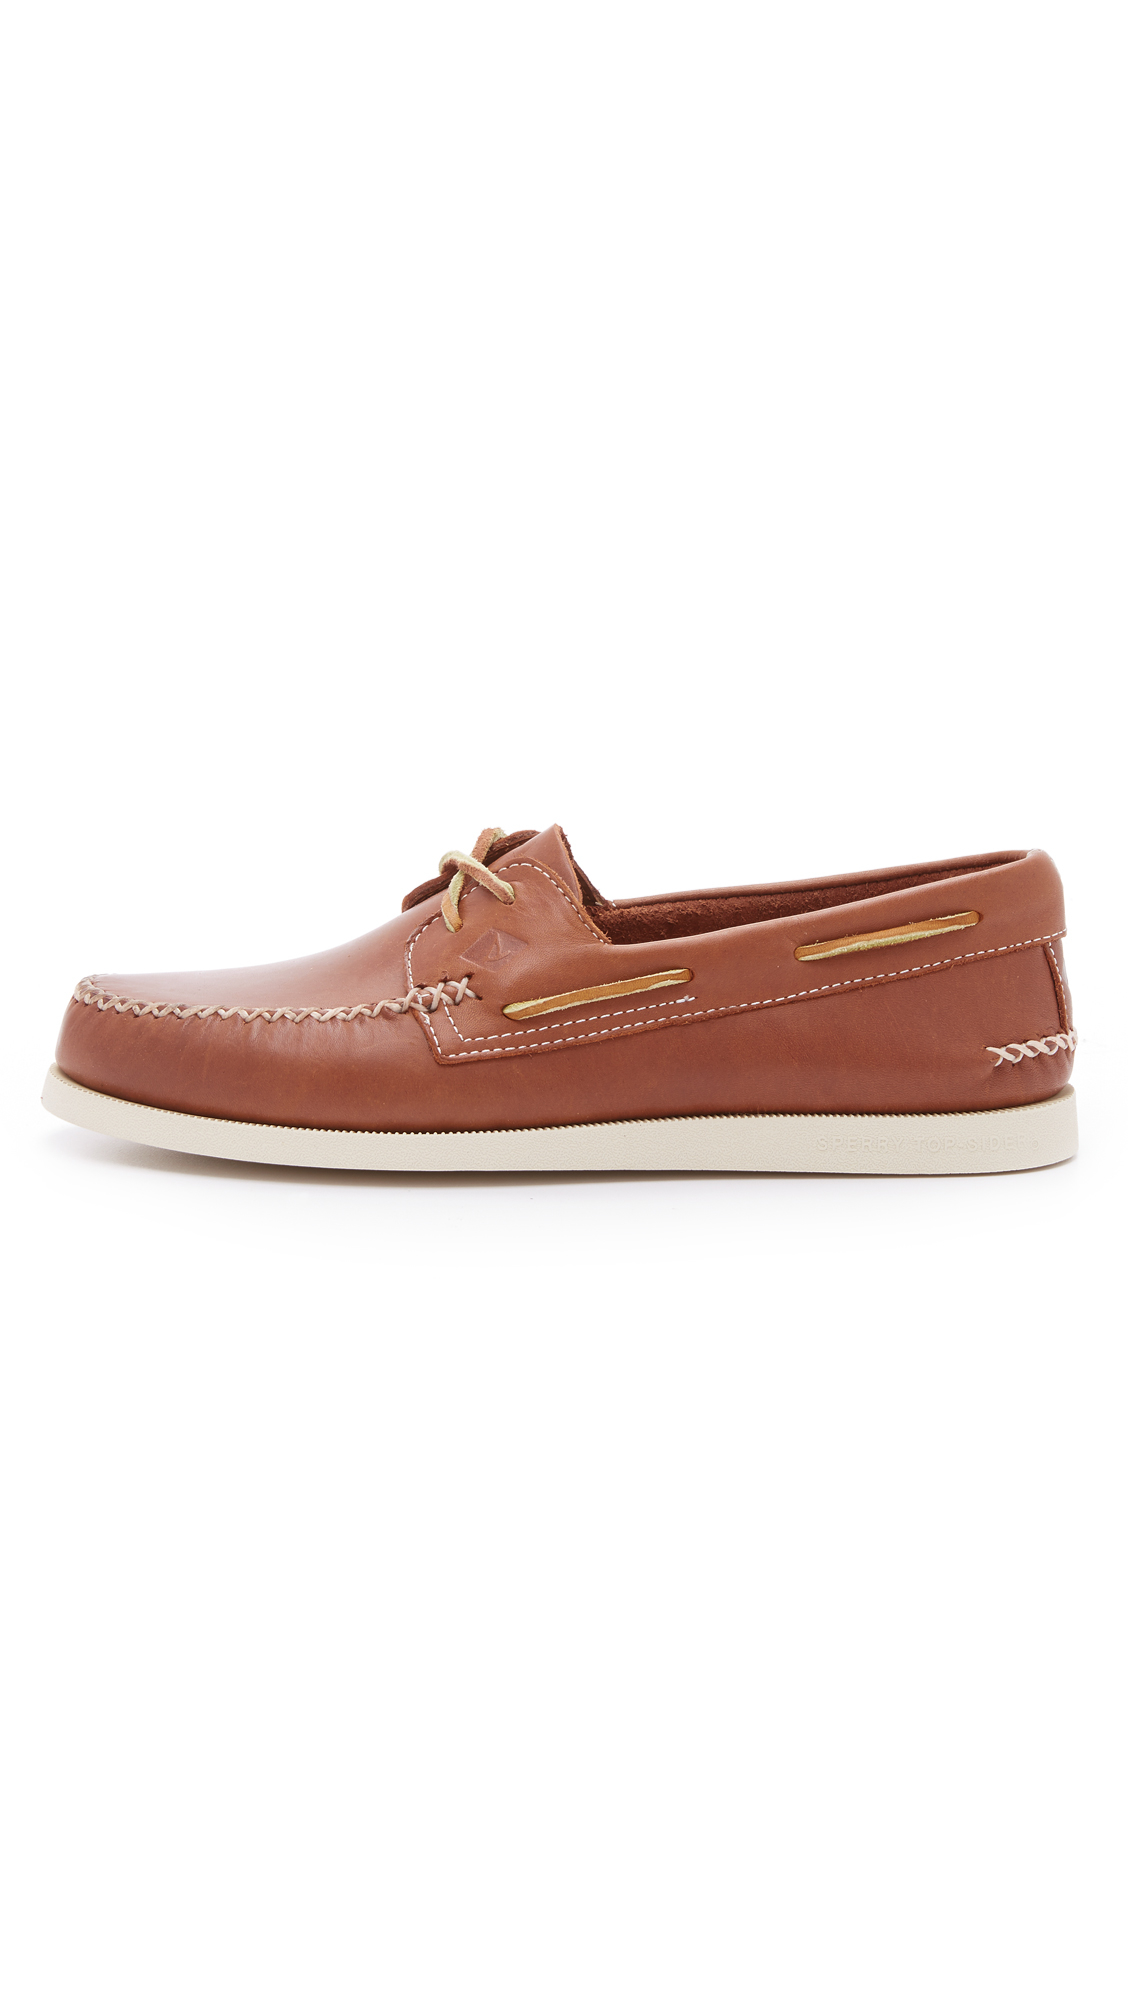 sperry top sider a o 2 eye wedge leather boat shoes in